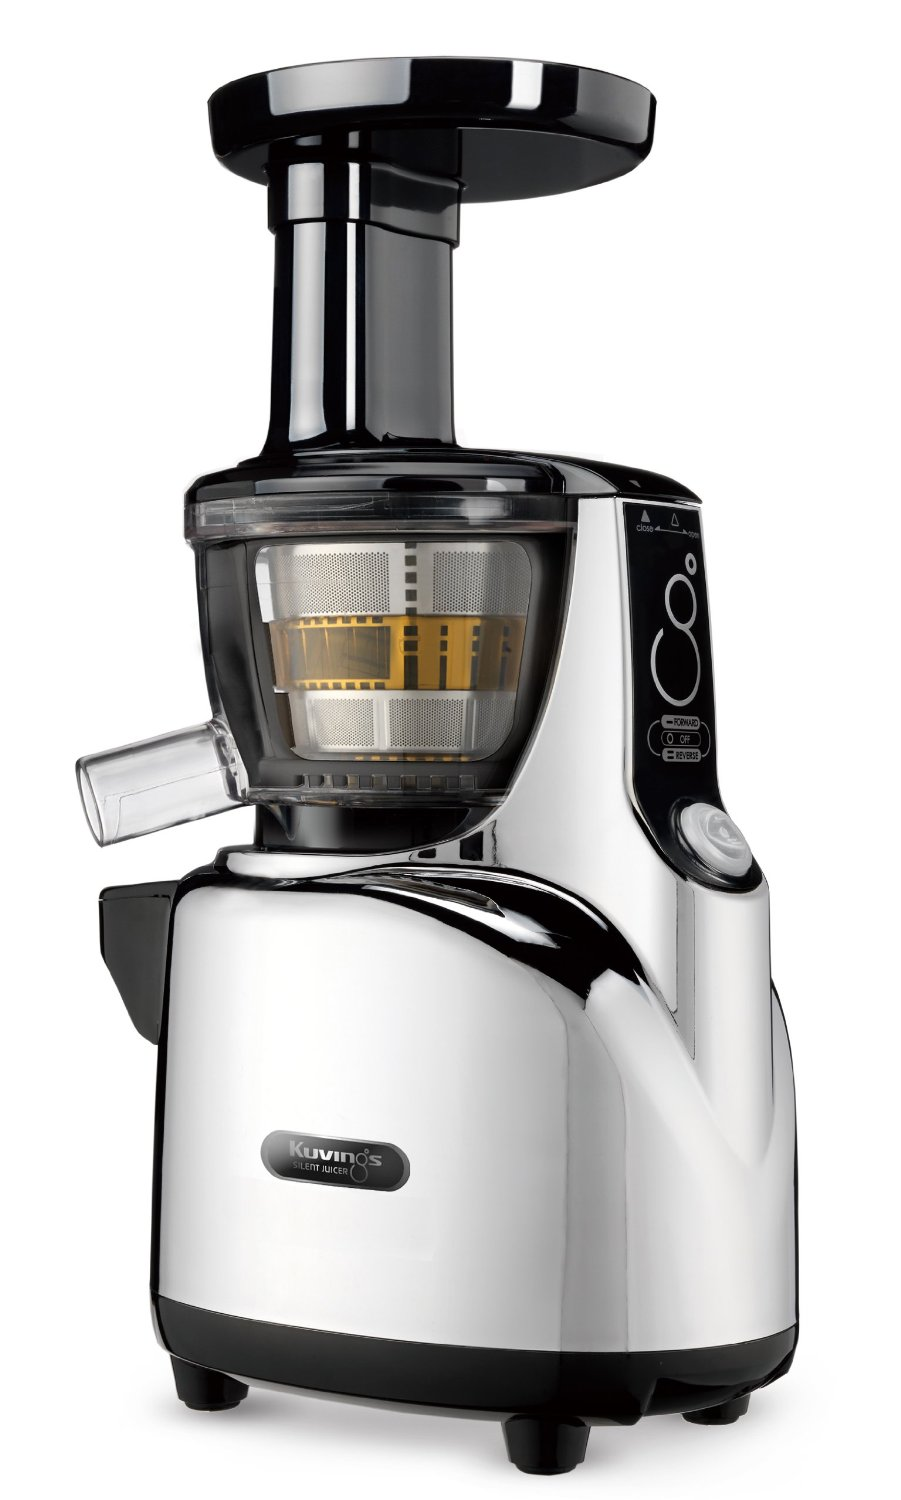 Slow Juicer Reviews 2015 : 5 Best Kuvings Juicer Reviews UPDATED: 2018 The Home Savant